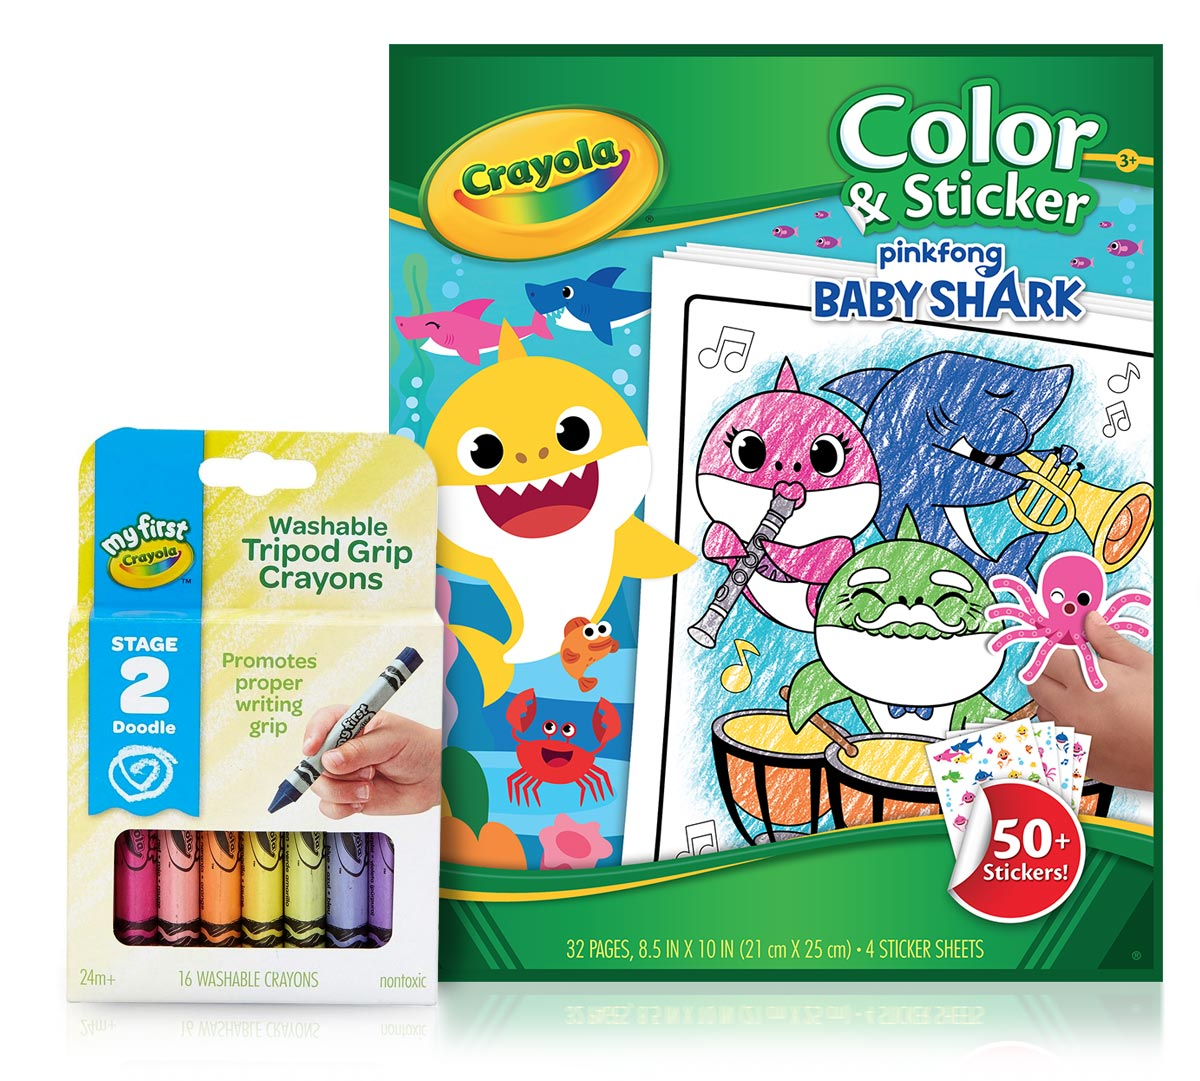 Baby Shark Coloring Set with Triangle Crayons | Crayola.com | Crayola